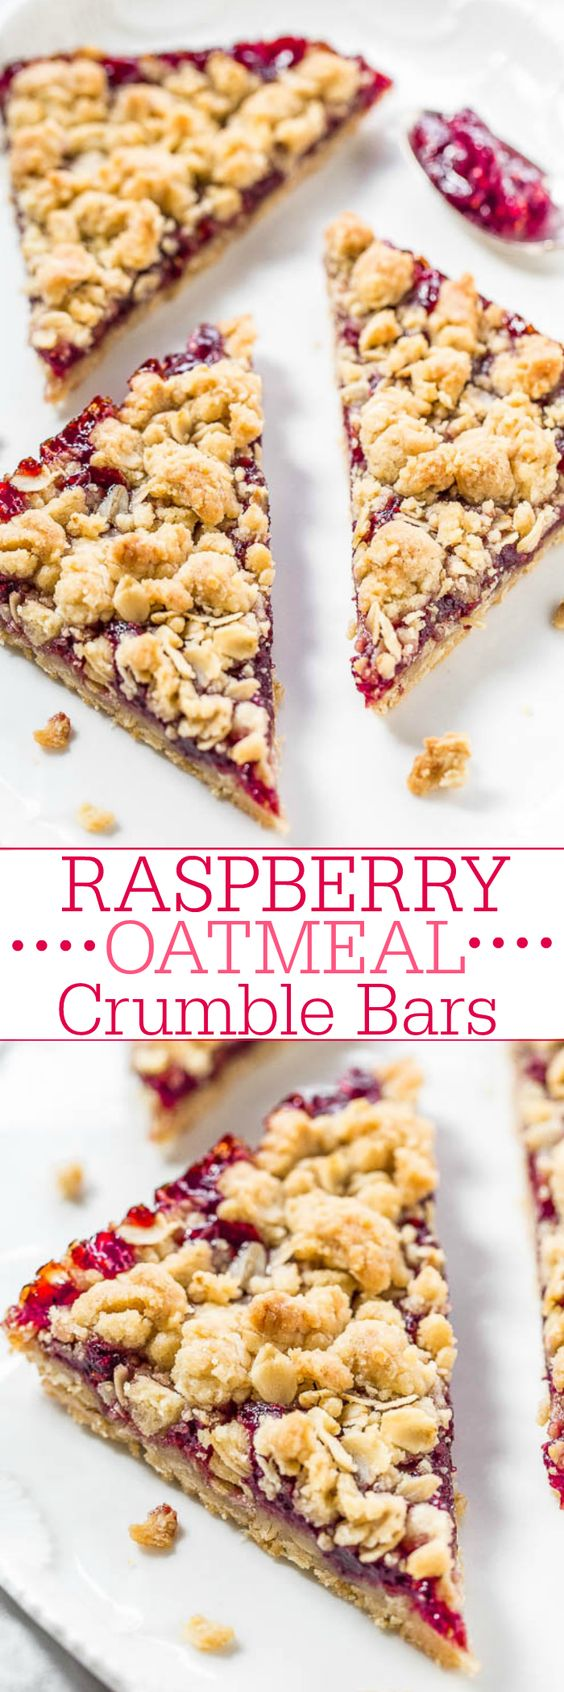 Raspberry Oatmeal Crumble Bars - Fast, easy, no-mixer bars great for breakfast, snacks, or a healthy dessert!! The big crumbles are irresistible! Fresh raspberries not needed so you can make the bars year round!!: